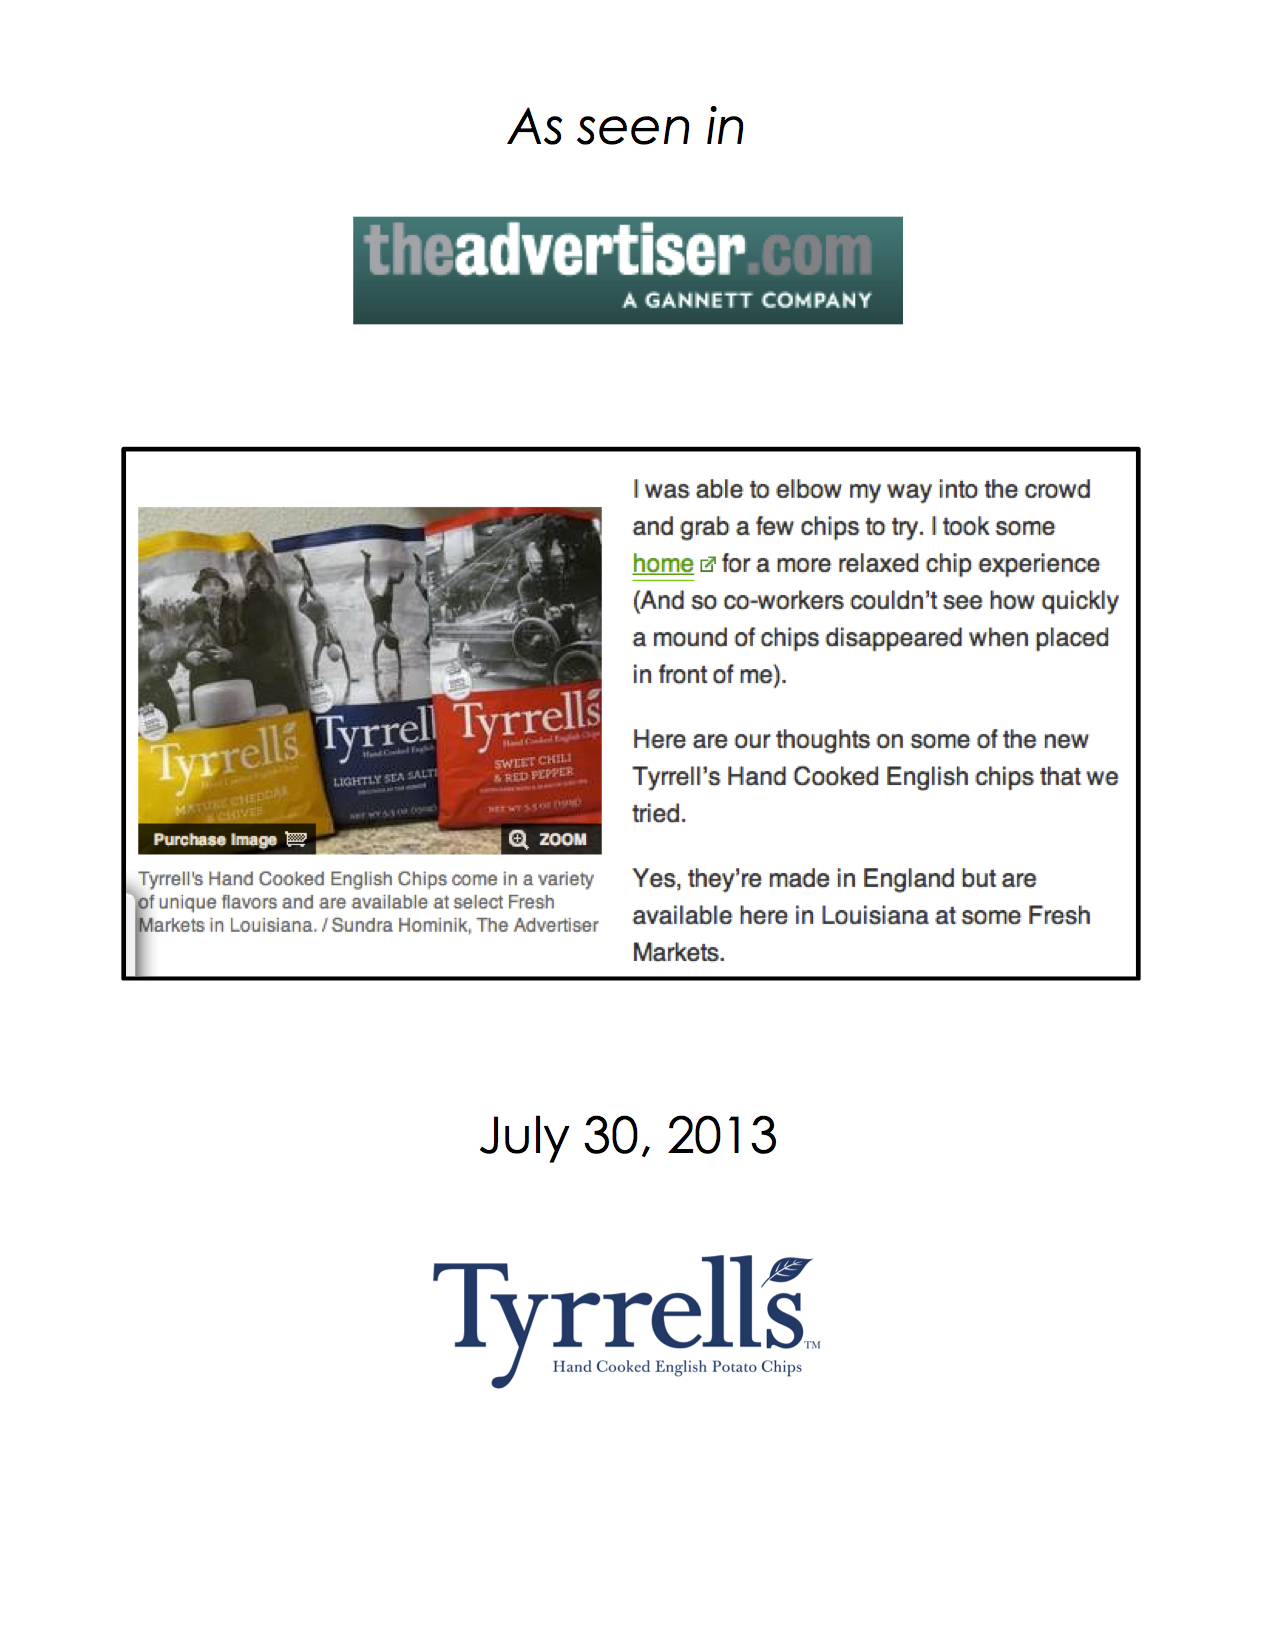 tyrrells-asseenin-theadvertiser.com copy.jpg